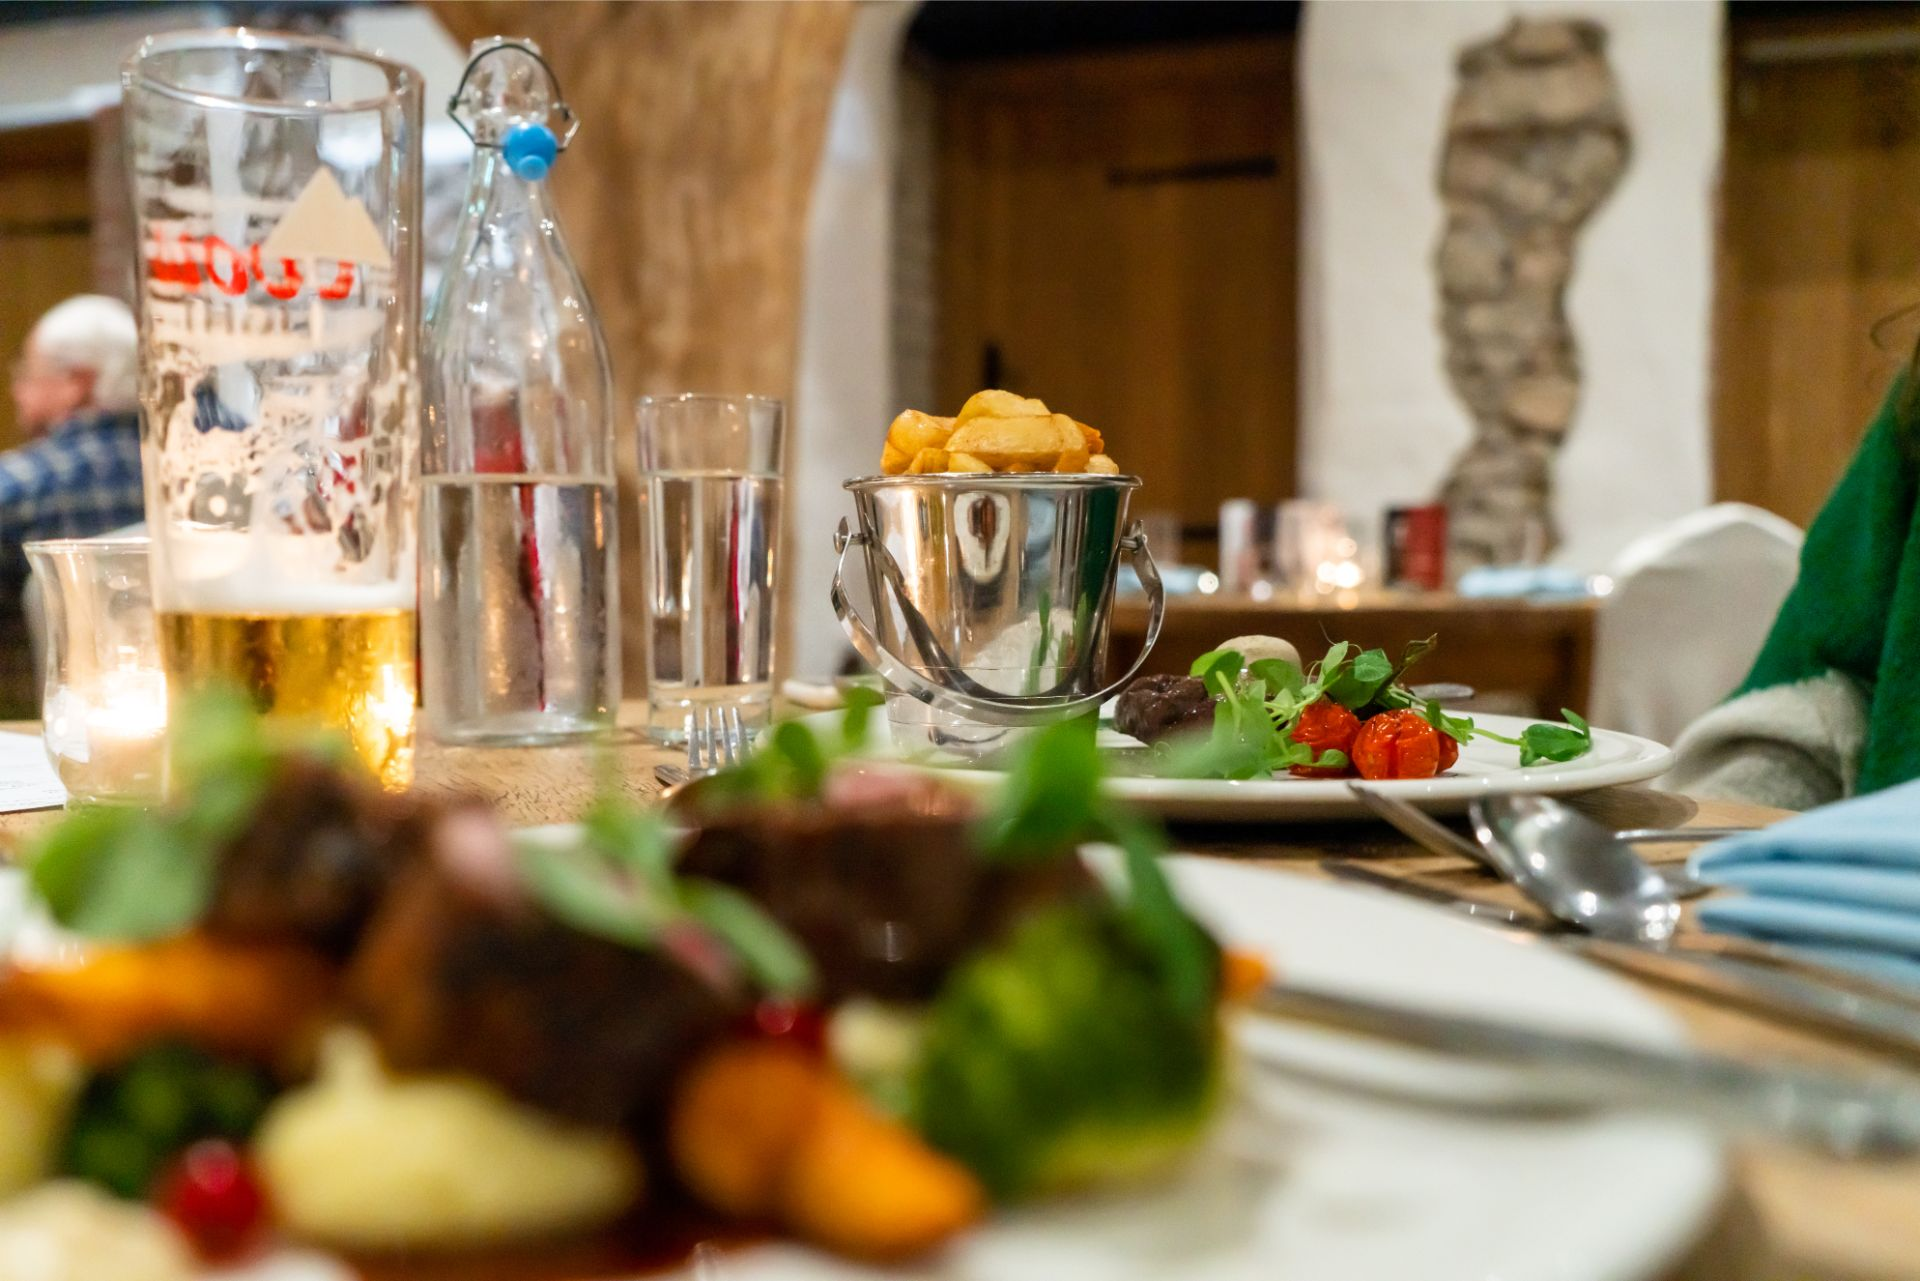 food-meals-at-restaurant-chips-and-steak-oxwich-bay-hotel-restaurant-wales